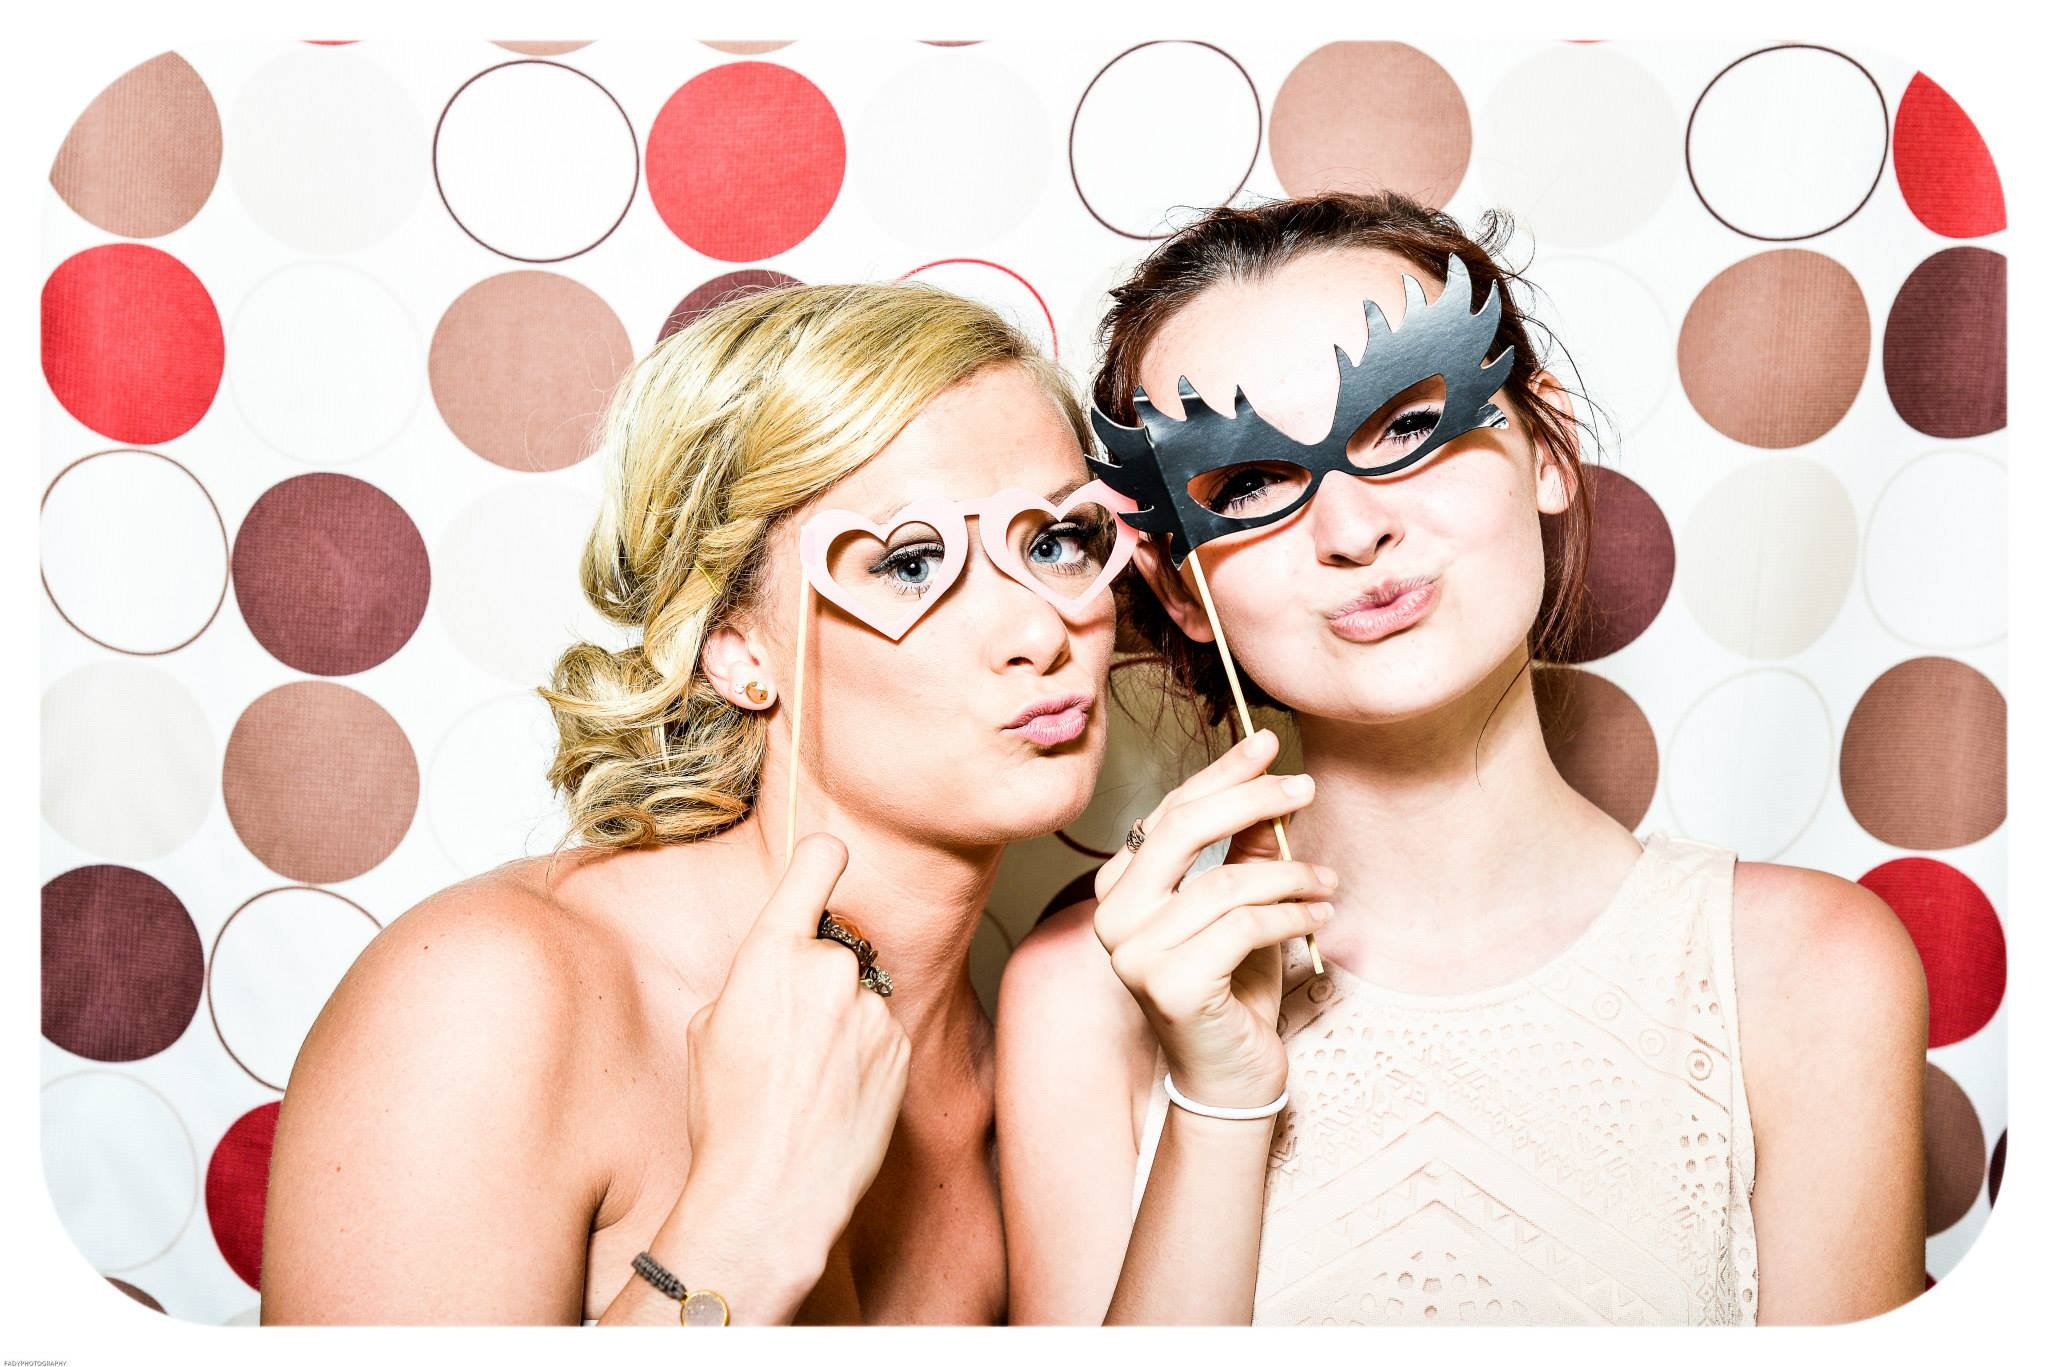 photo-booth-wedding-party-girls-160420.jpeg (2048×1367)